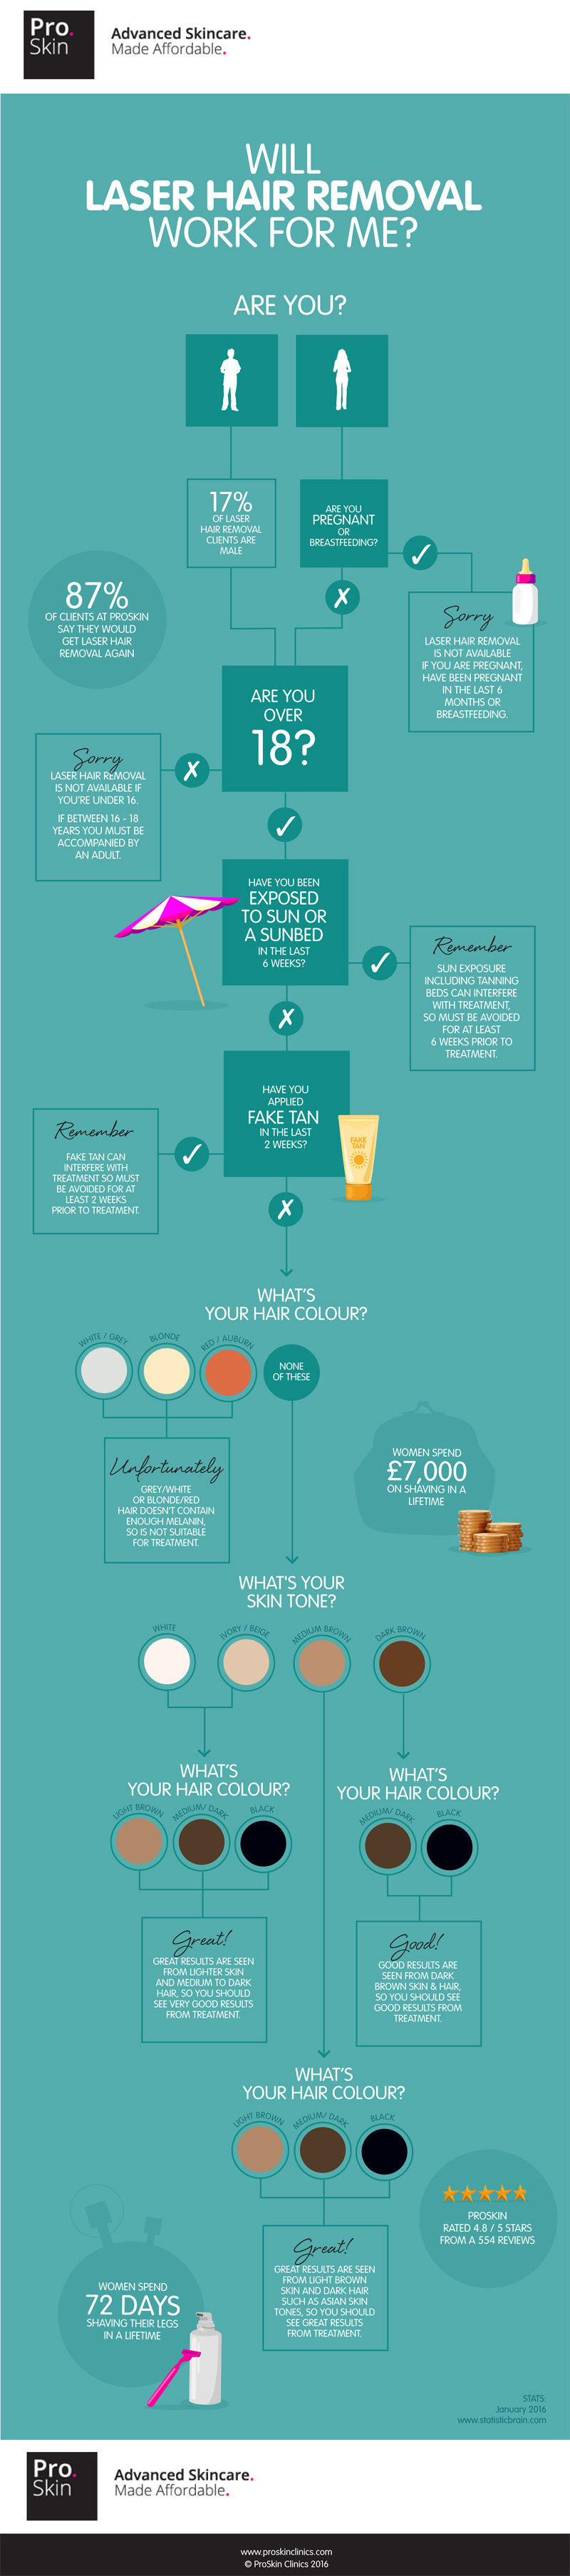 Proskin-Laser-Hair-Removal-Infographic